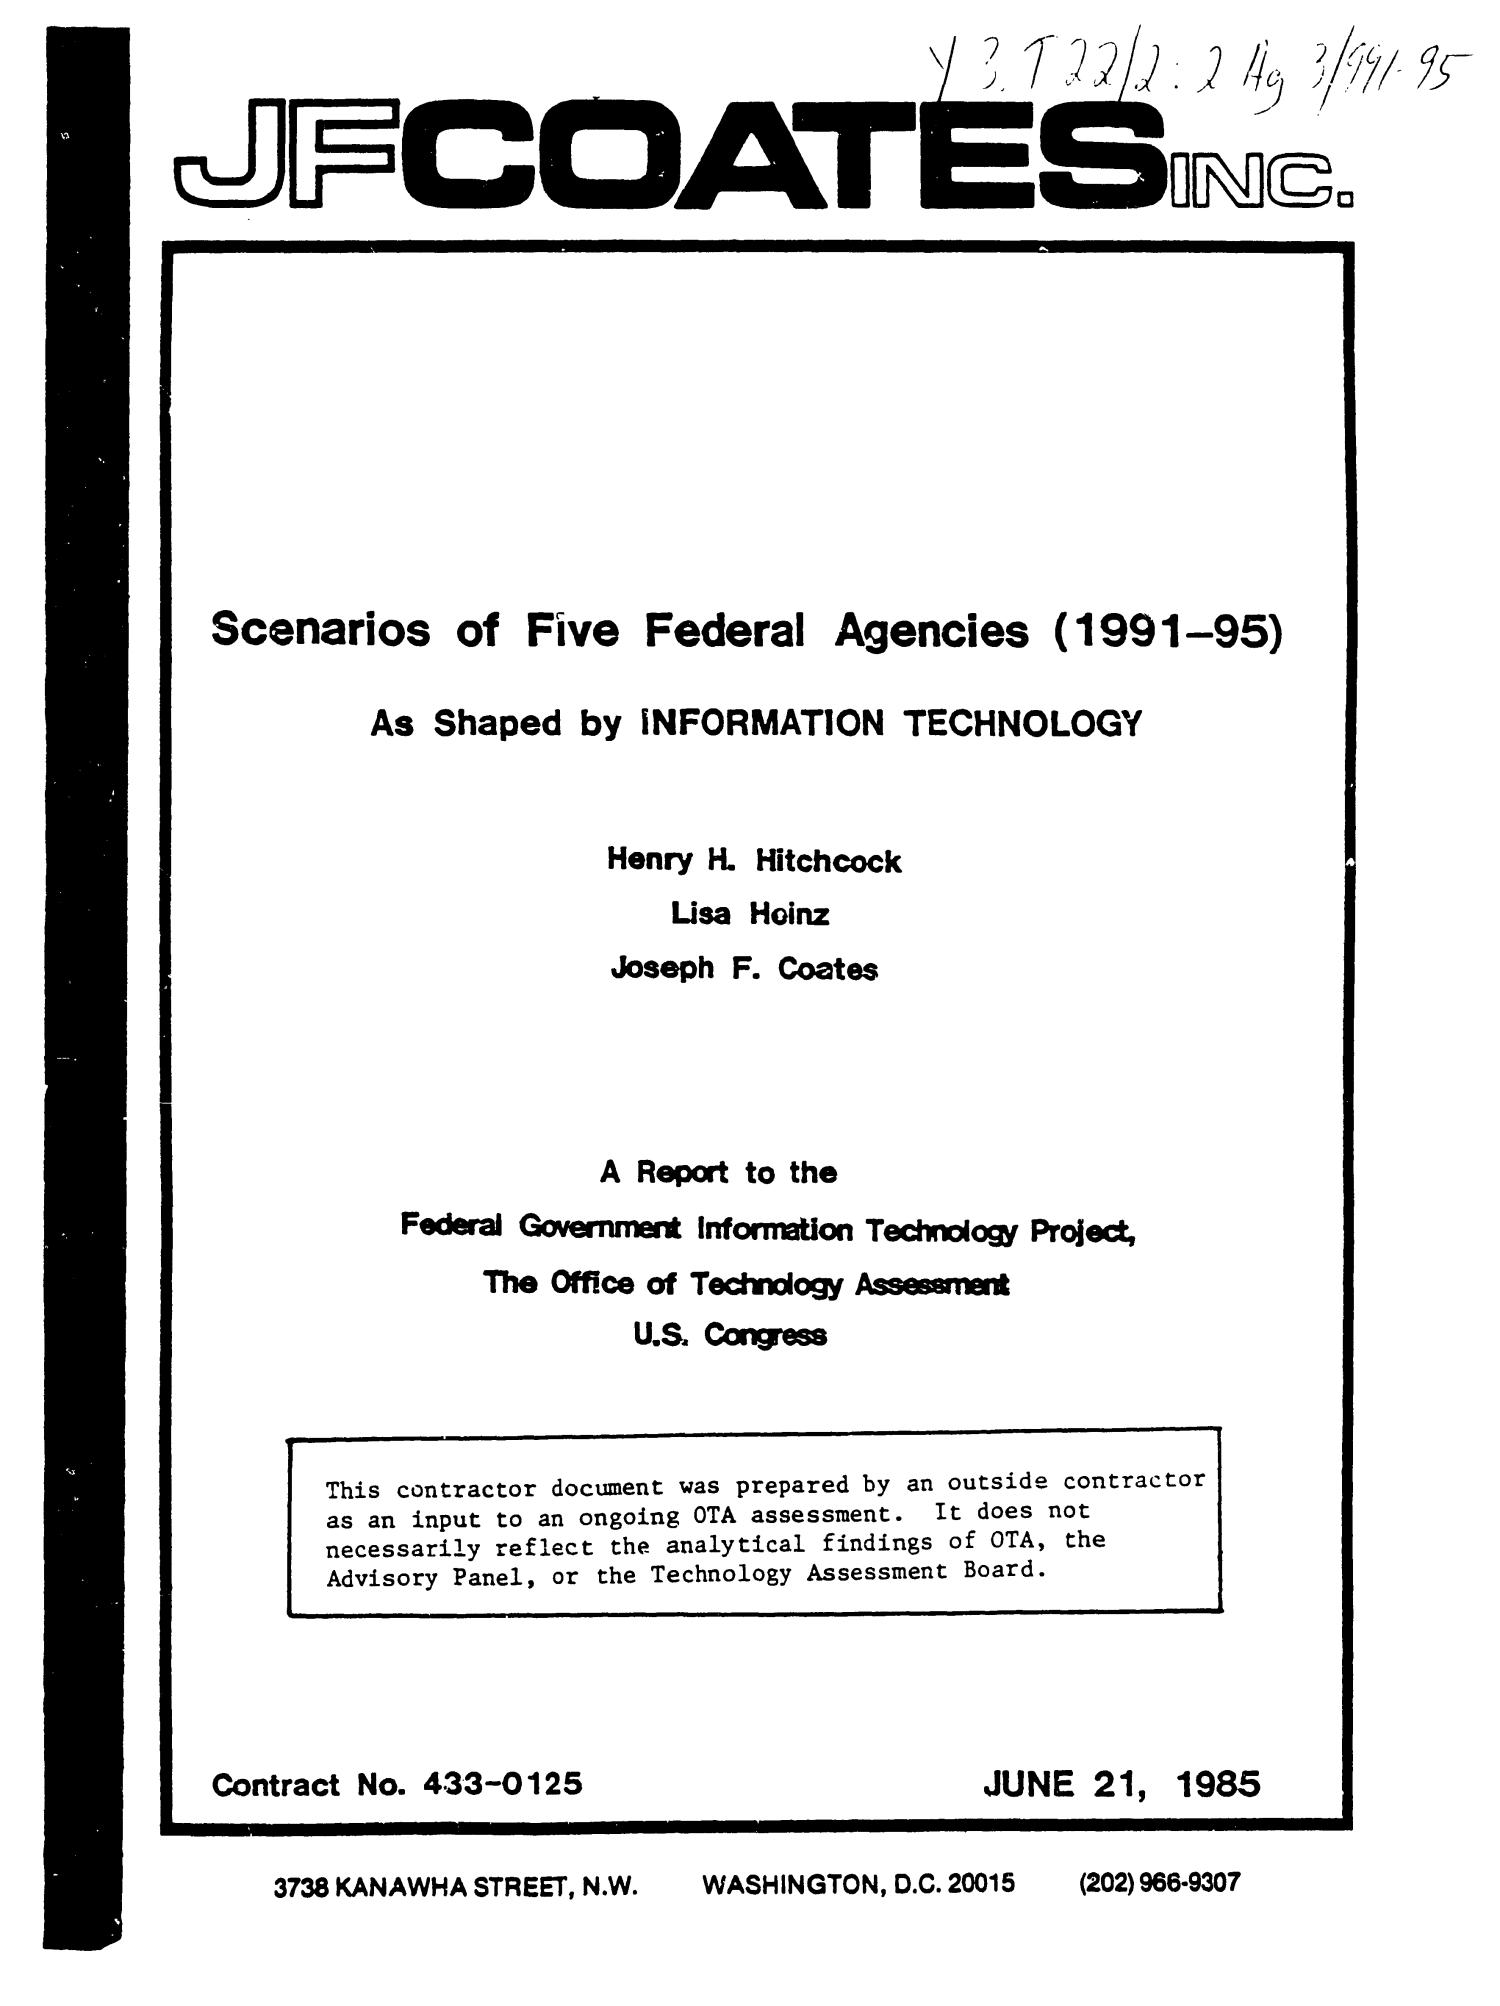 Scenarios of five federal agencies (1991-95) as shaped by information technology: a report to the Federal Government Information Technology Project                                                                                                      Title Page